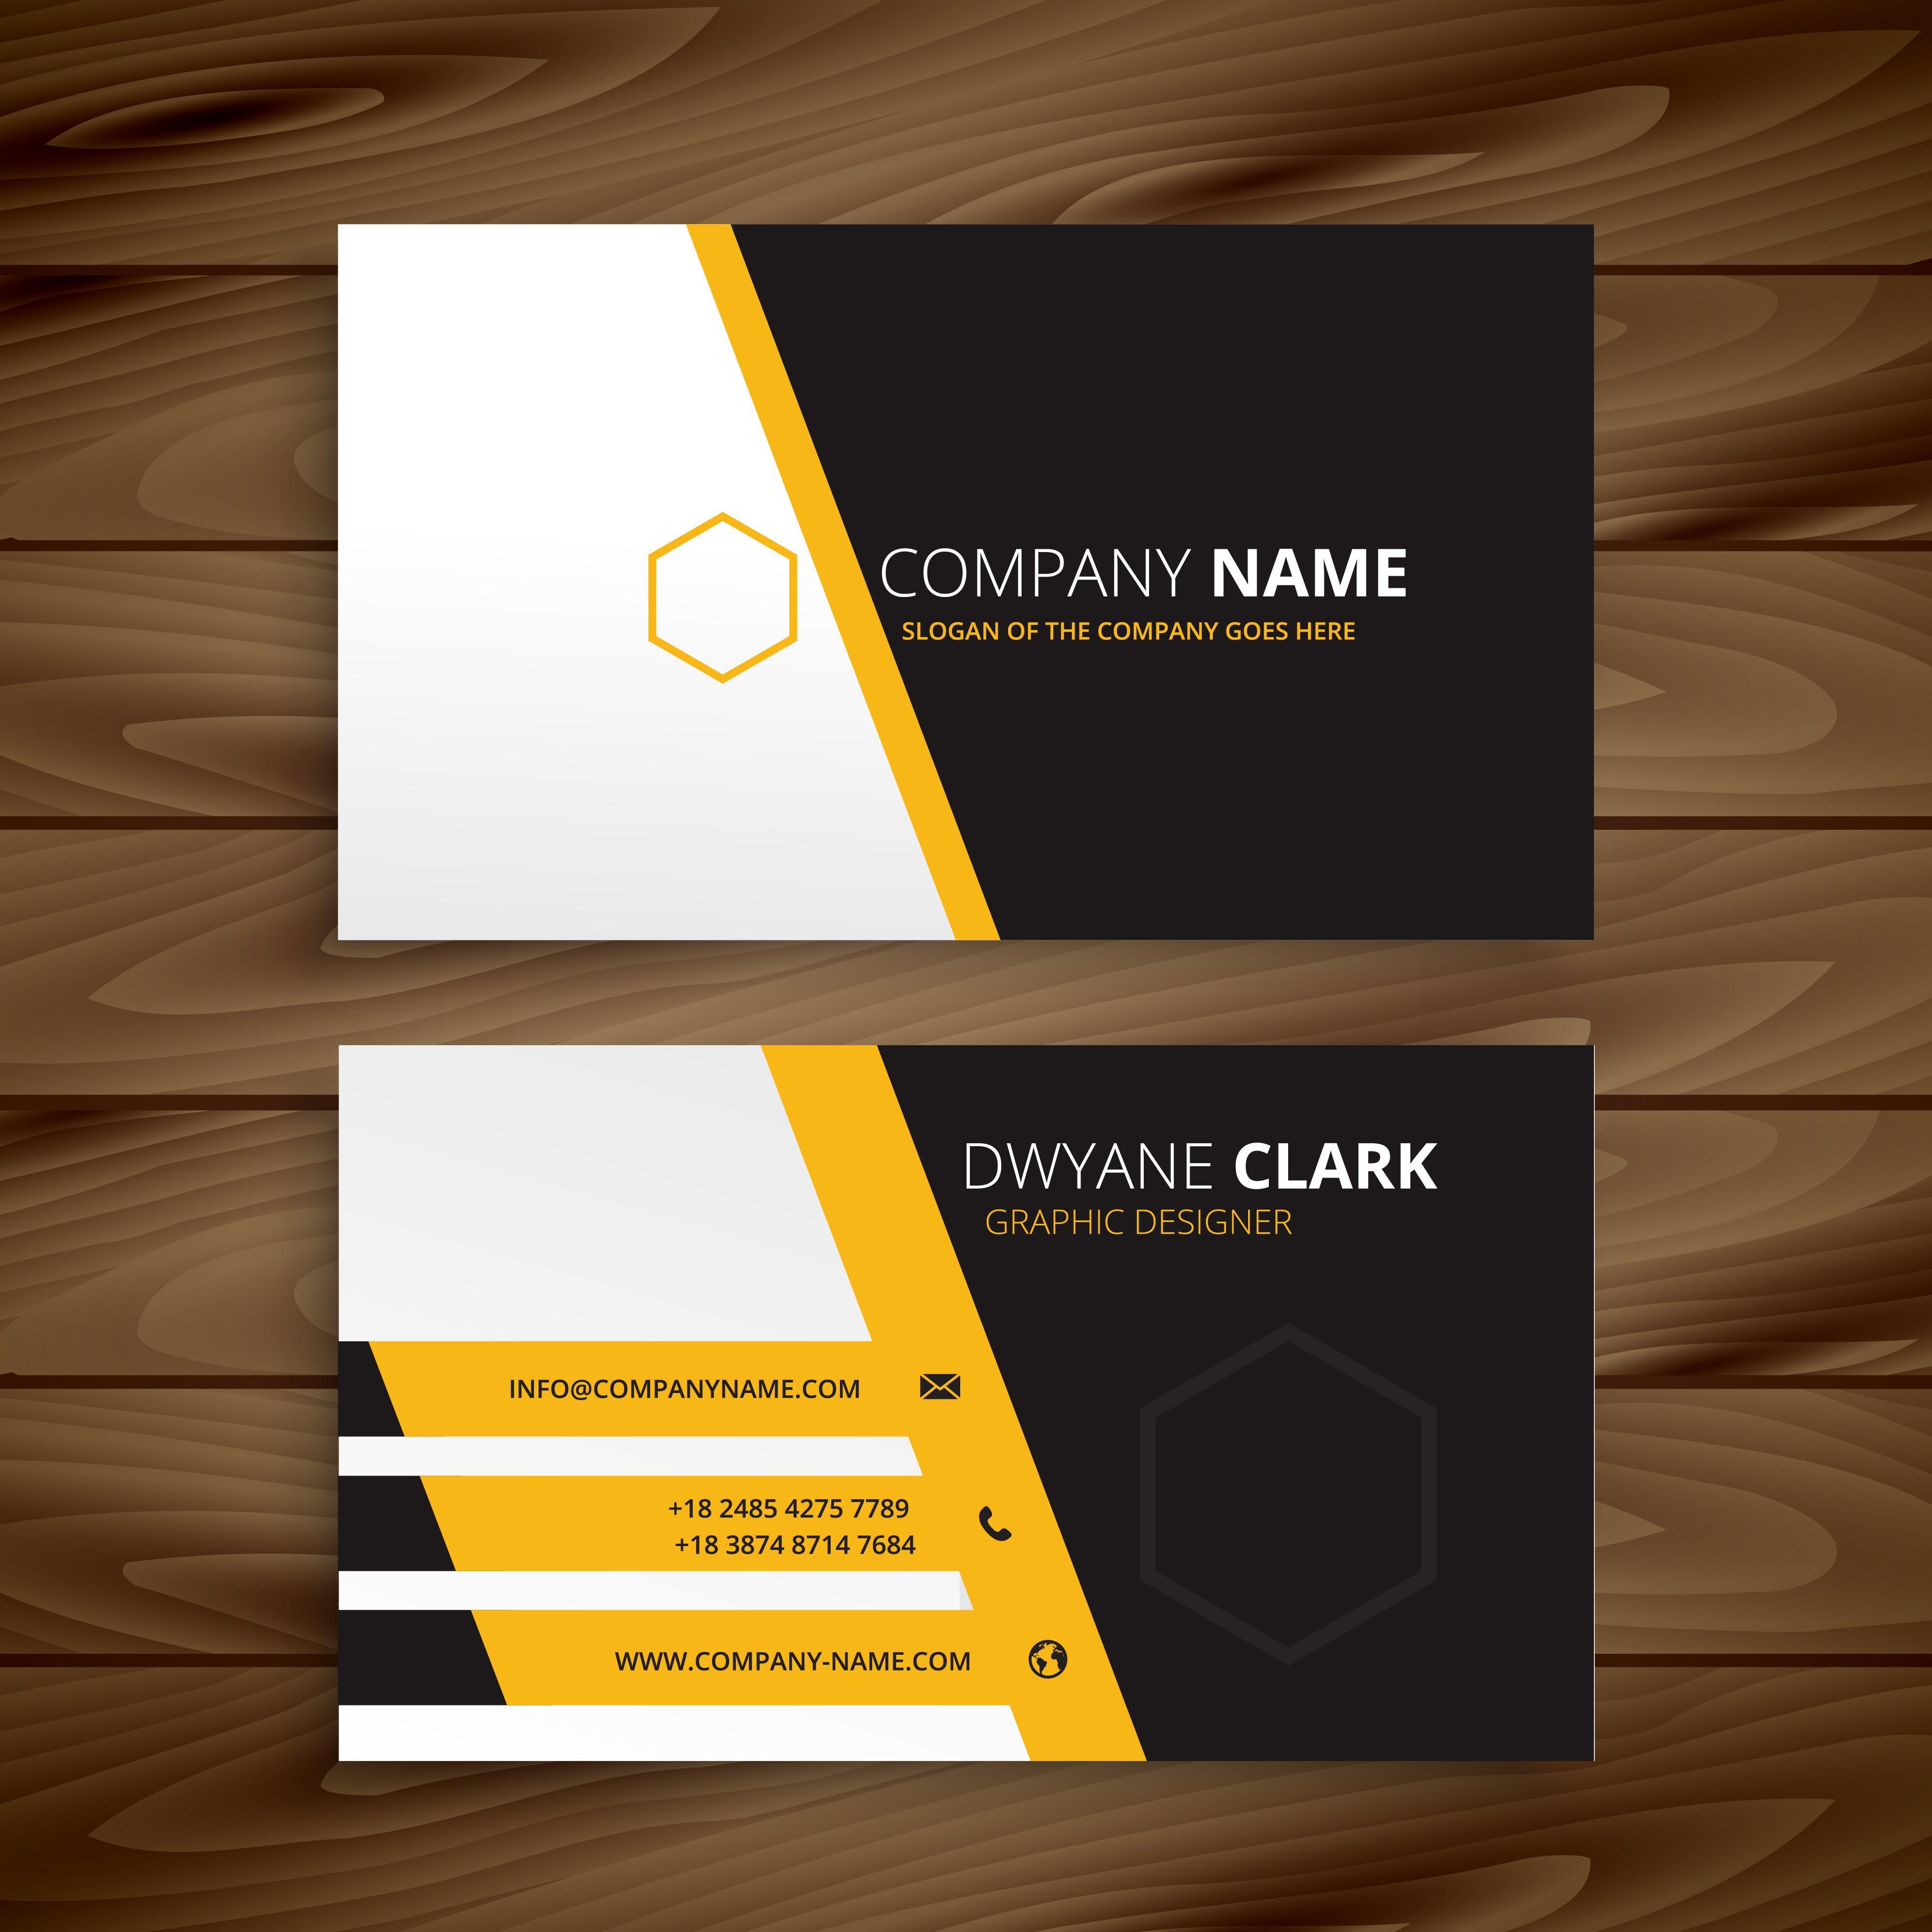 Business Card Layout Template: Modern Business Card Template Vector Design Illustration